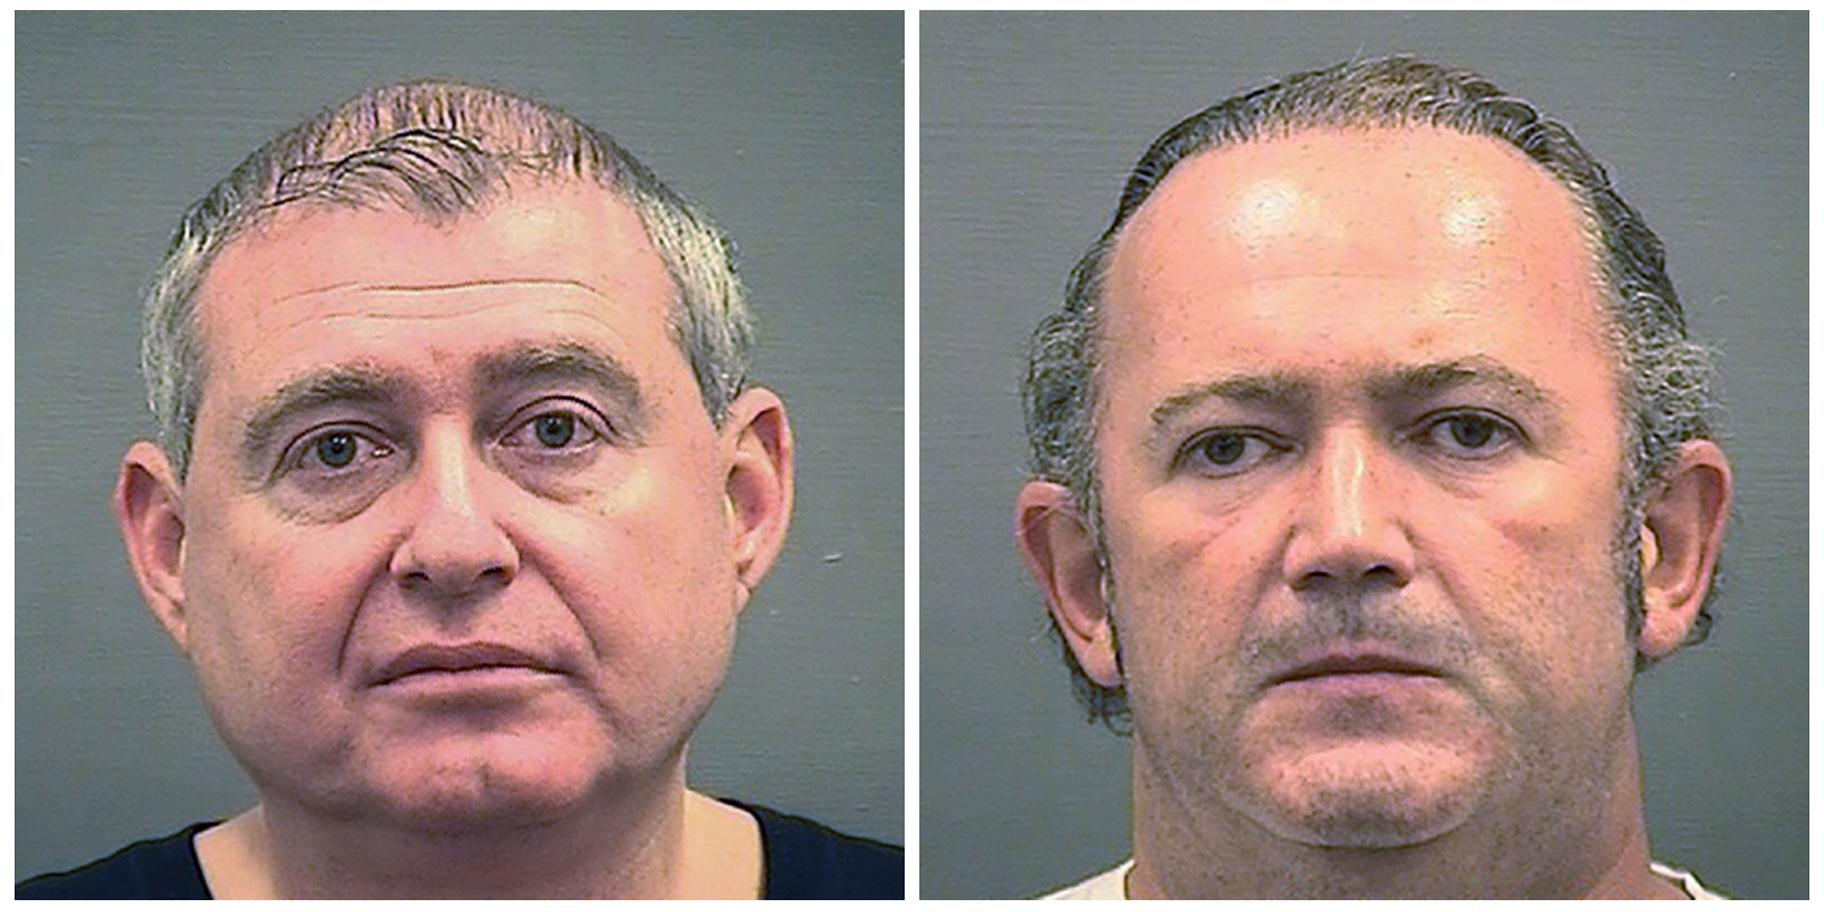 This combination of photos provided by the Alexandria Sheriff's Office shows booking photos of Lev Parnas, left, and Igor Fruman. (Alexandria Sheriff's Office via AP)